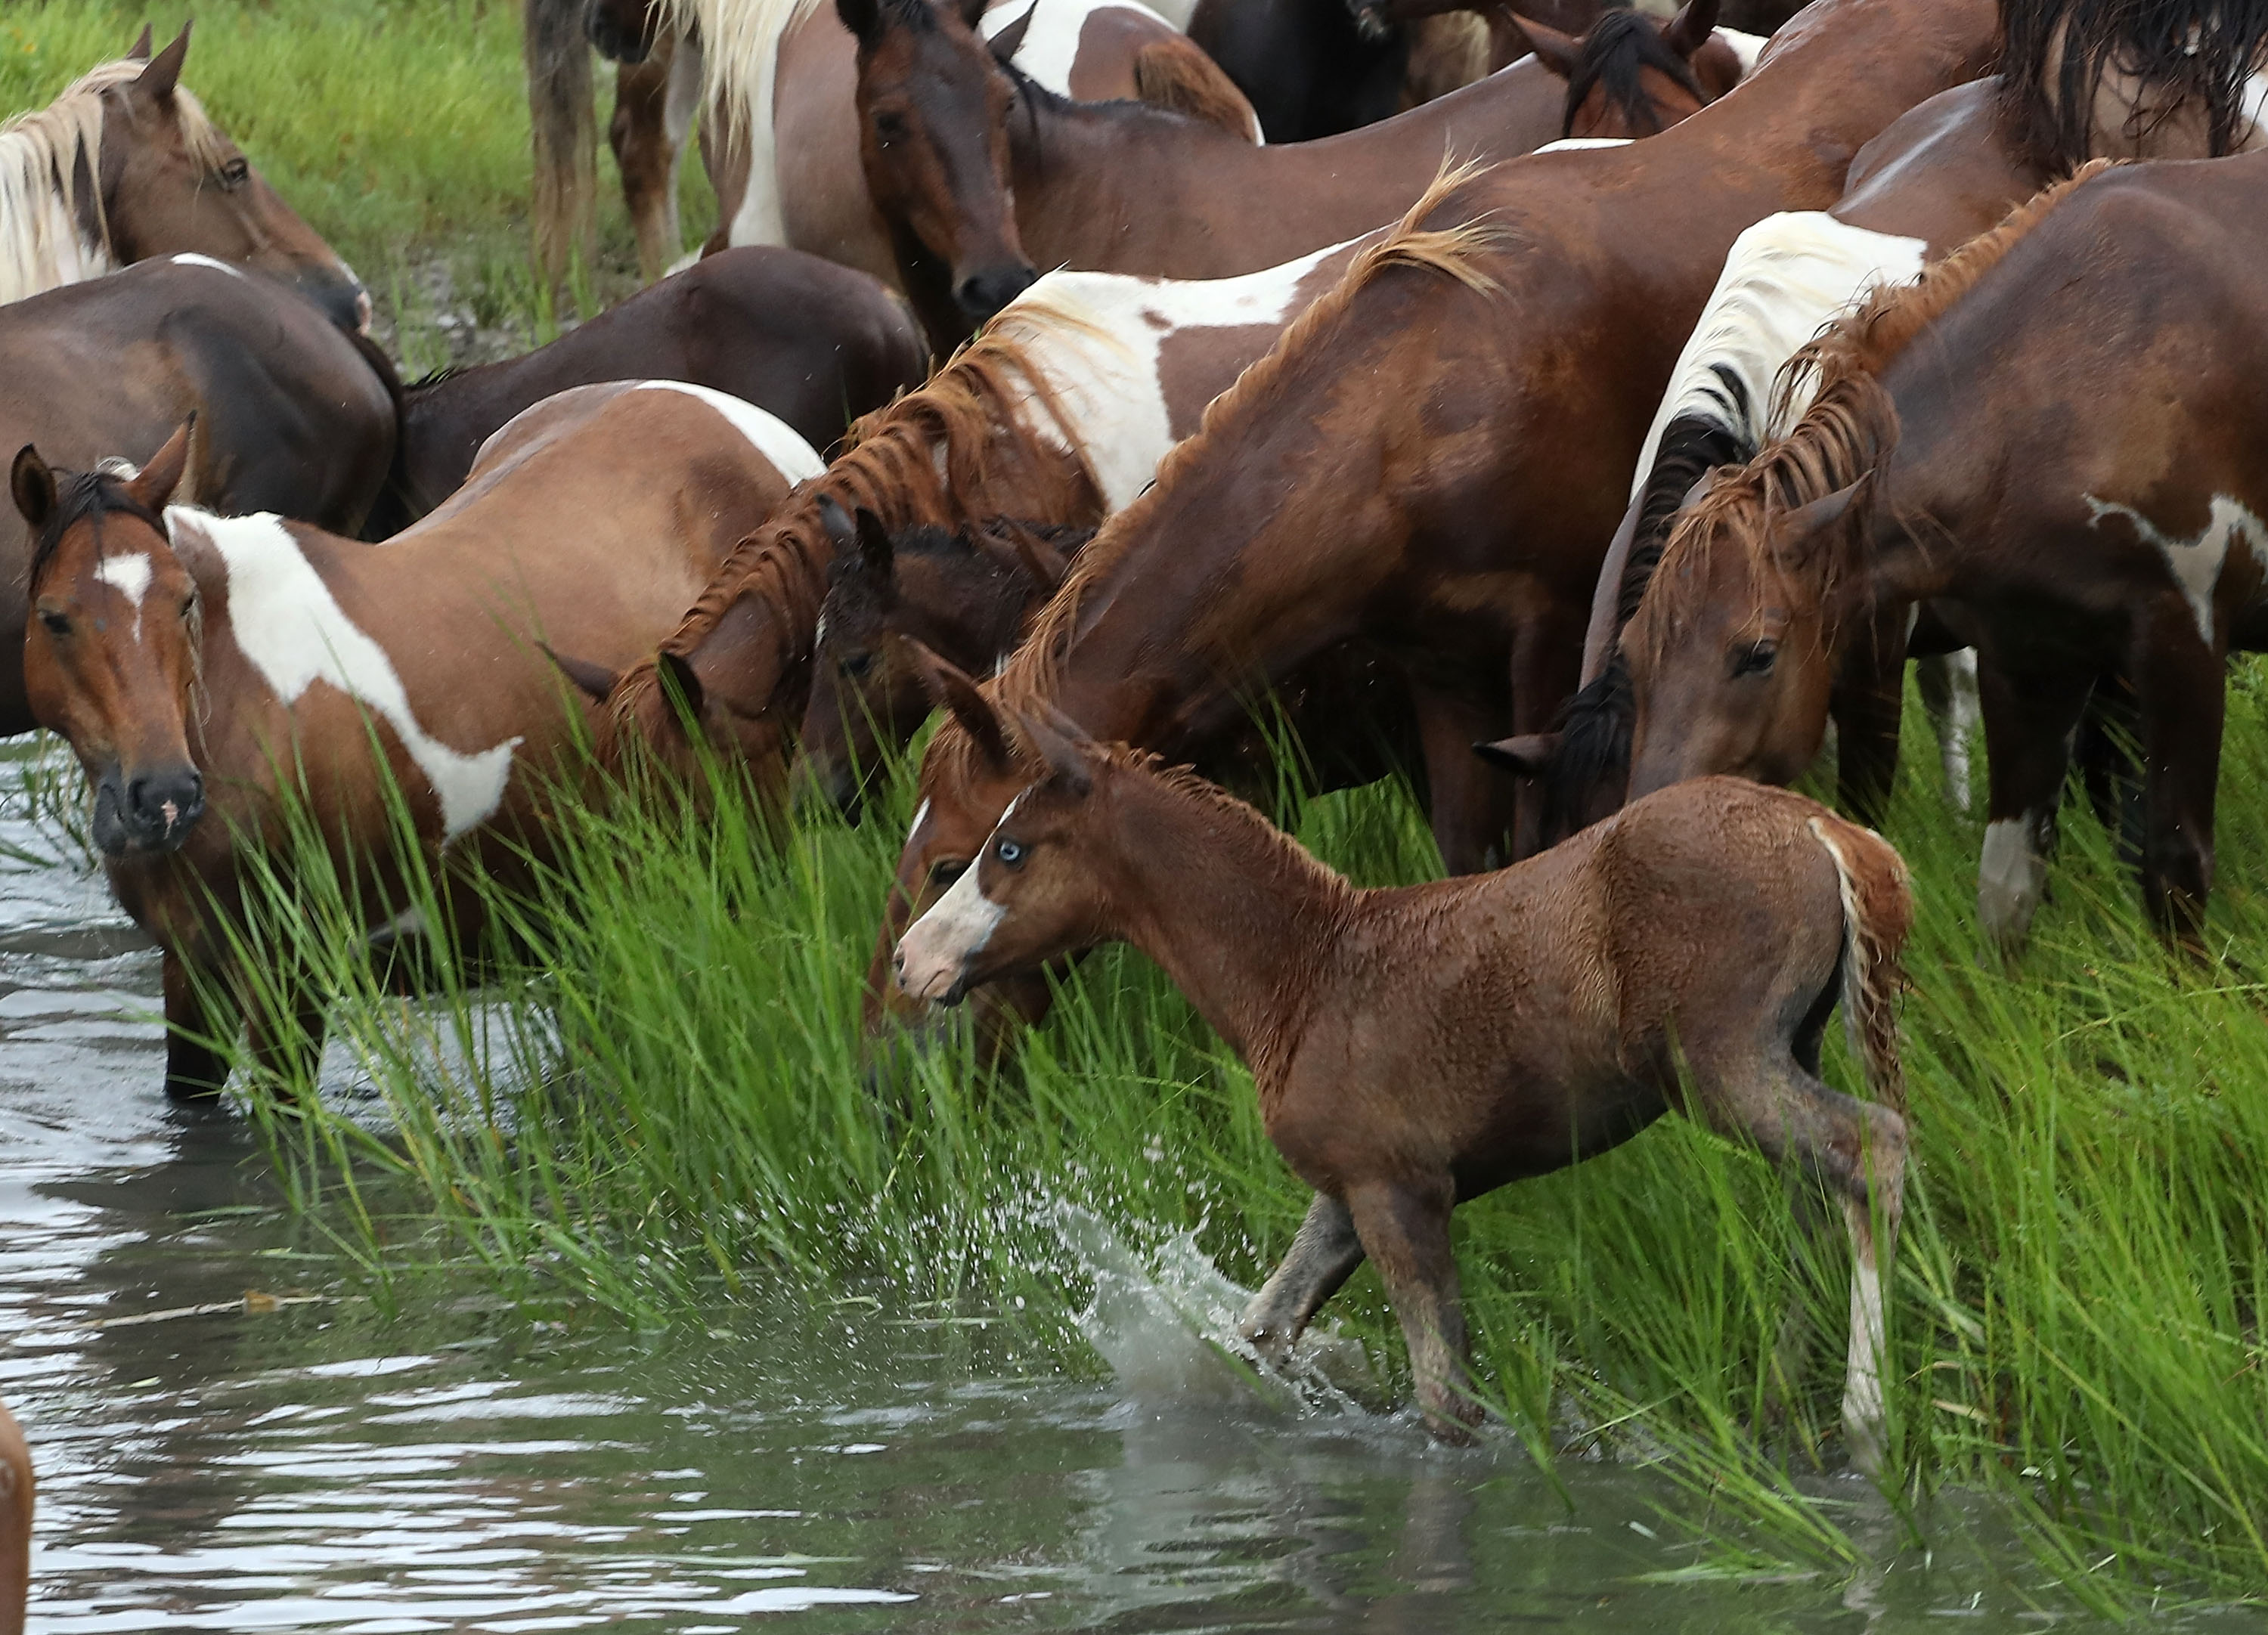 Wild ponies gather after swimming across the Assateague Channel during the 93rd annual pony swim from Assateague Island to Chincoteague on July 25, 2018 in Chincoteague Island, Virginia. Every year the wild ponies are rounded up on the Assateague national wildlife refuge to be auctioned off by the Chincoteague Volunteer Fire Company. (Photo by Mark Wilson/Getty Images)